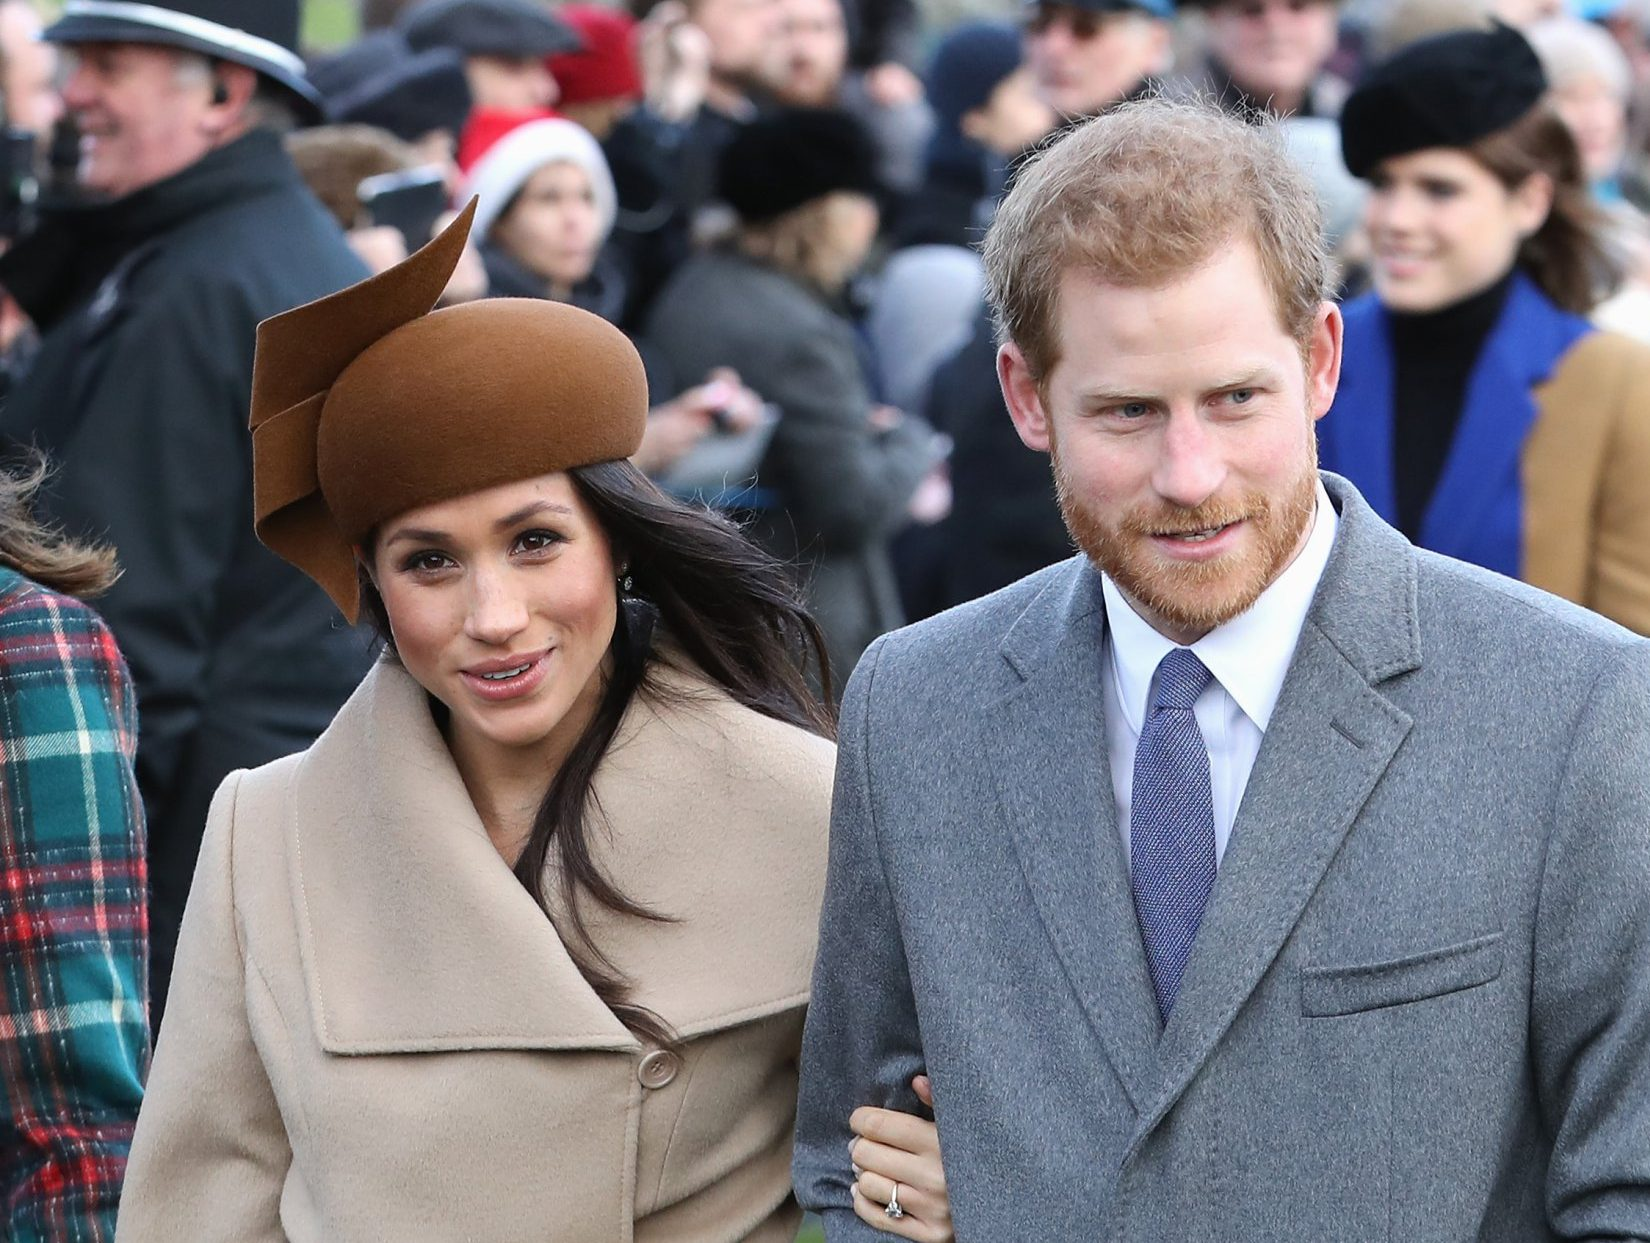 When is Meghan Markle due to give birth and could her baby share Prince Louis' birthday?